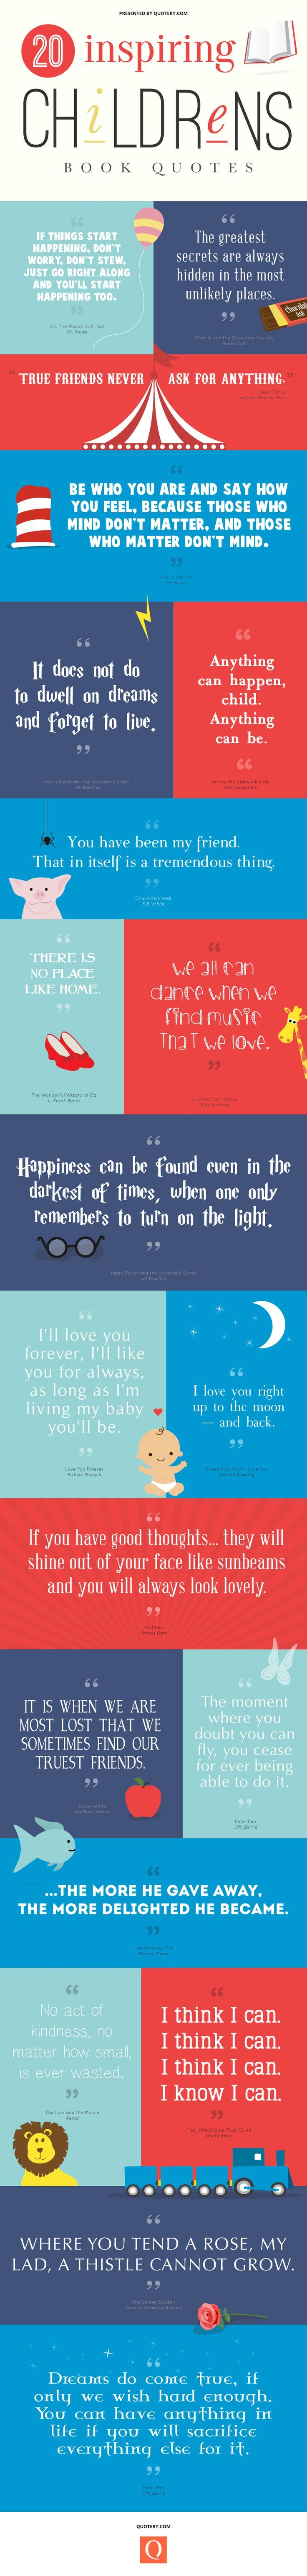 800x6718xinfographic-childrens-book-quotes.jpg.pagespeed.ic.FM1HApCh03